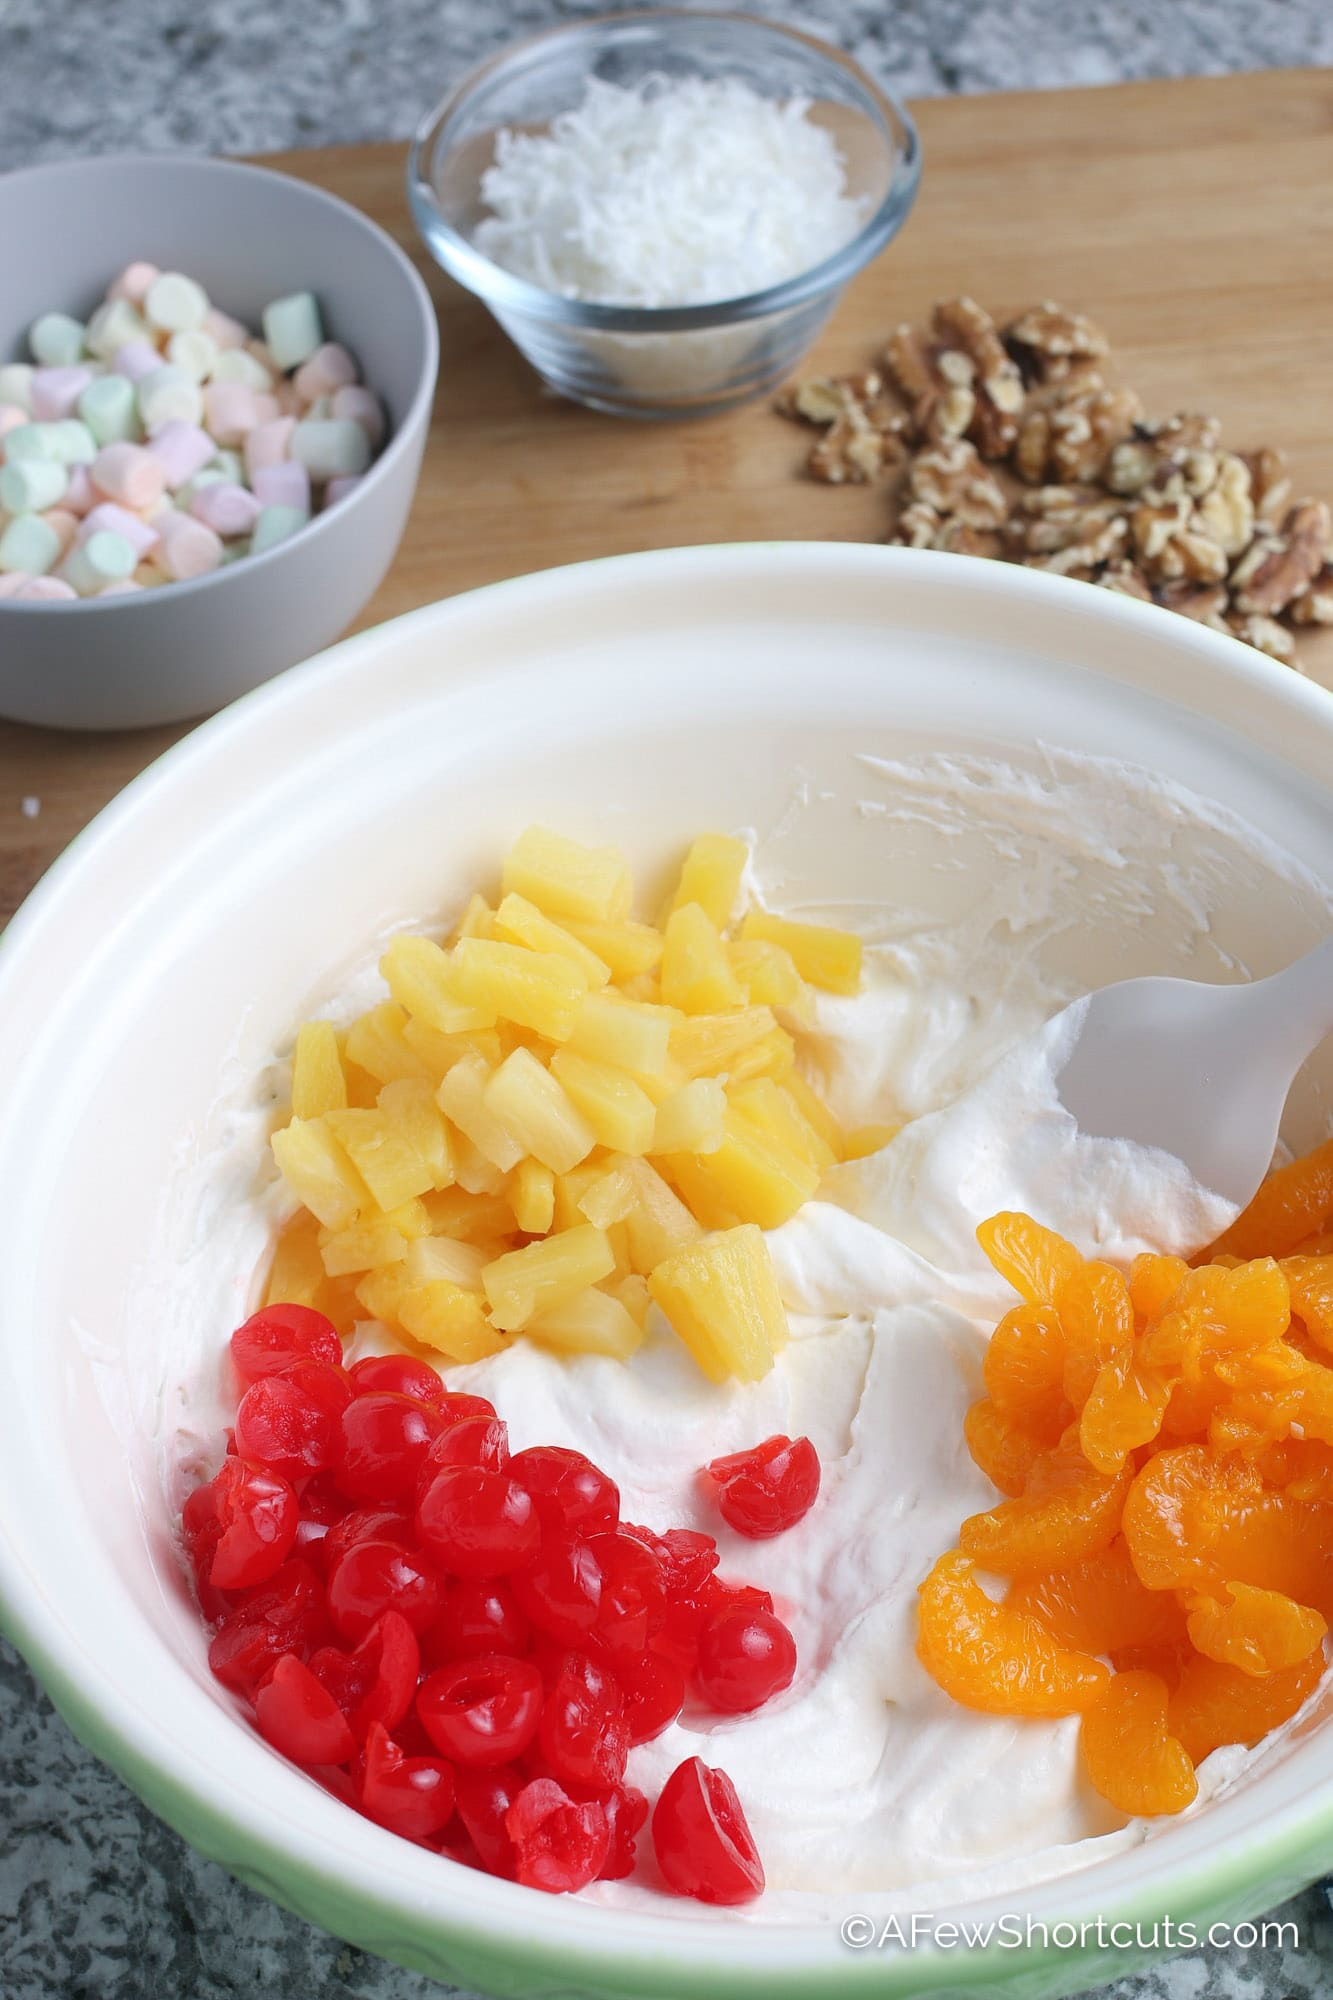 Fruit and whipped topping in bowl for ambrosia salad